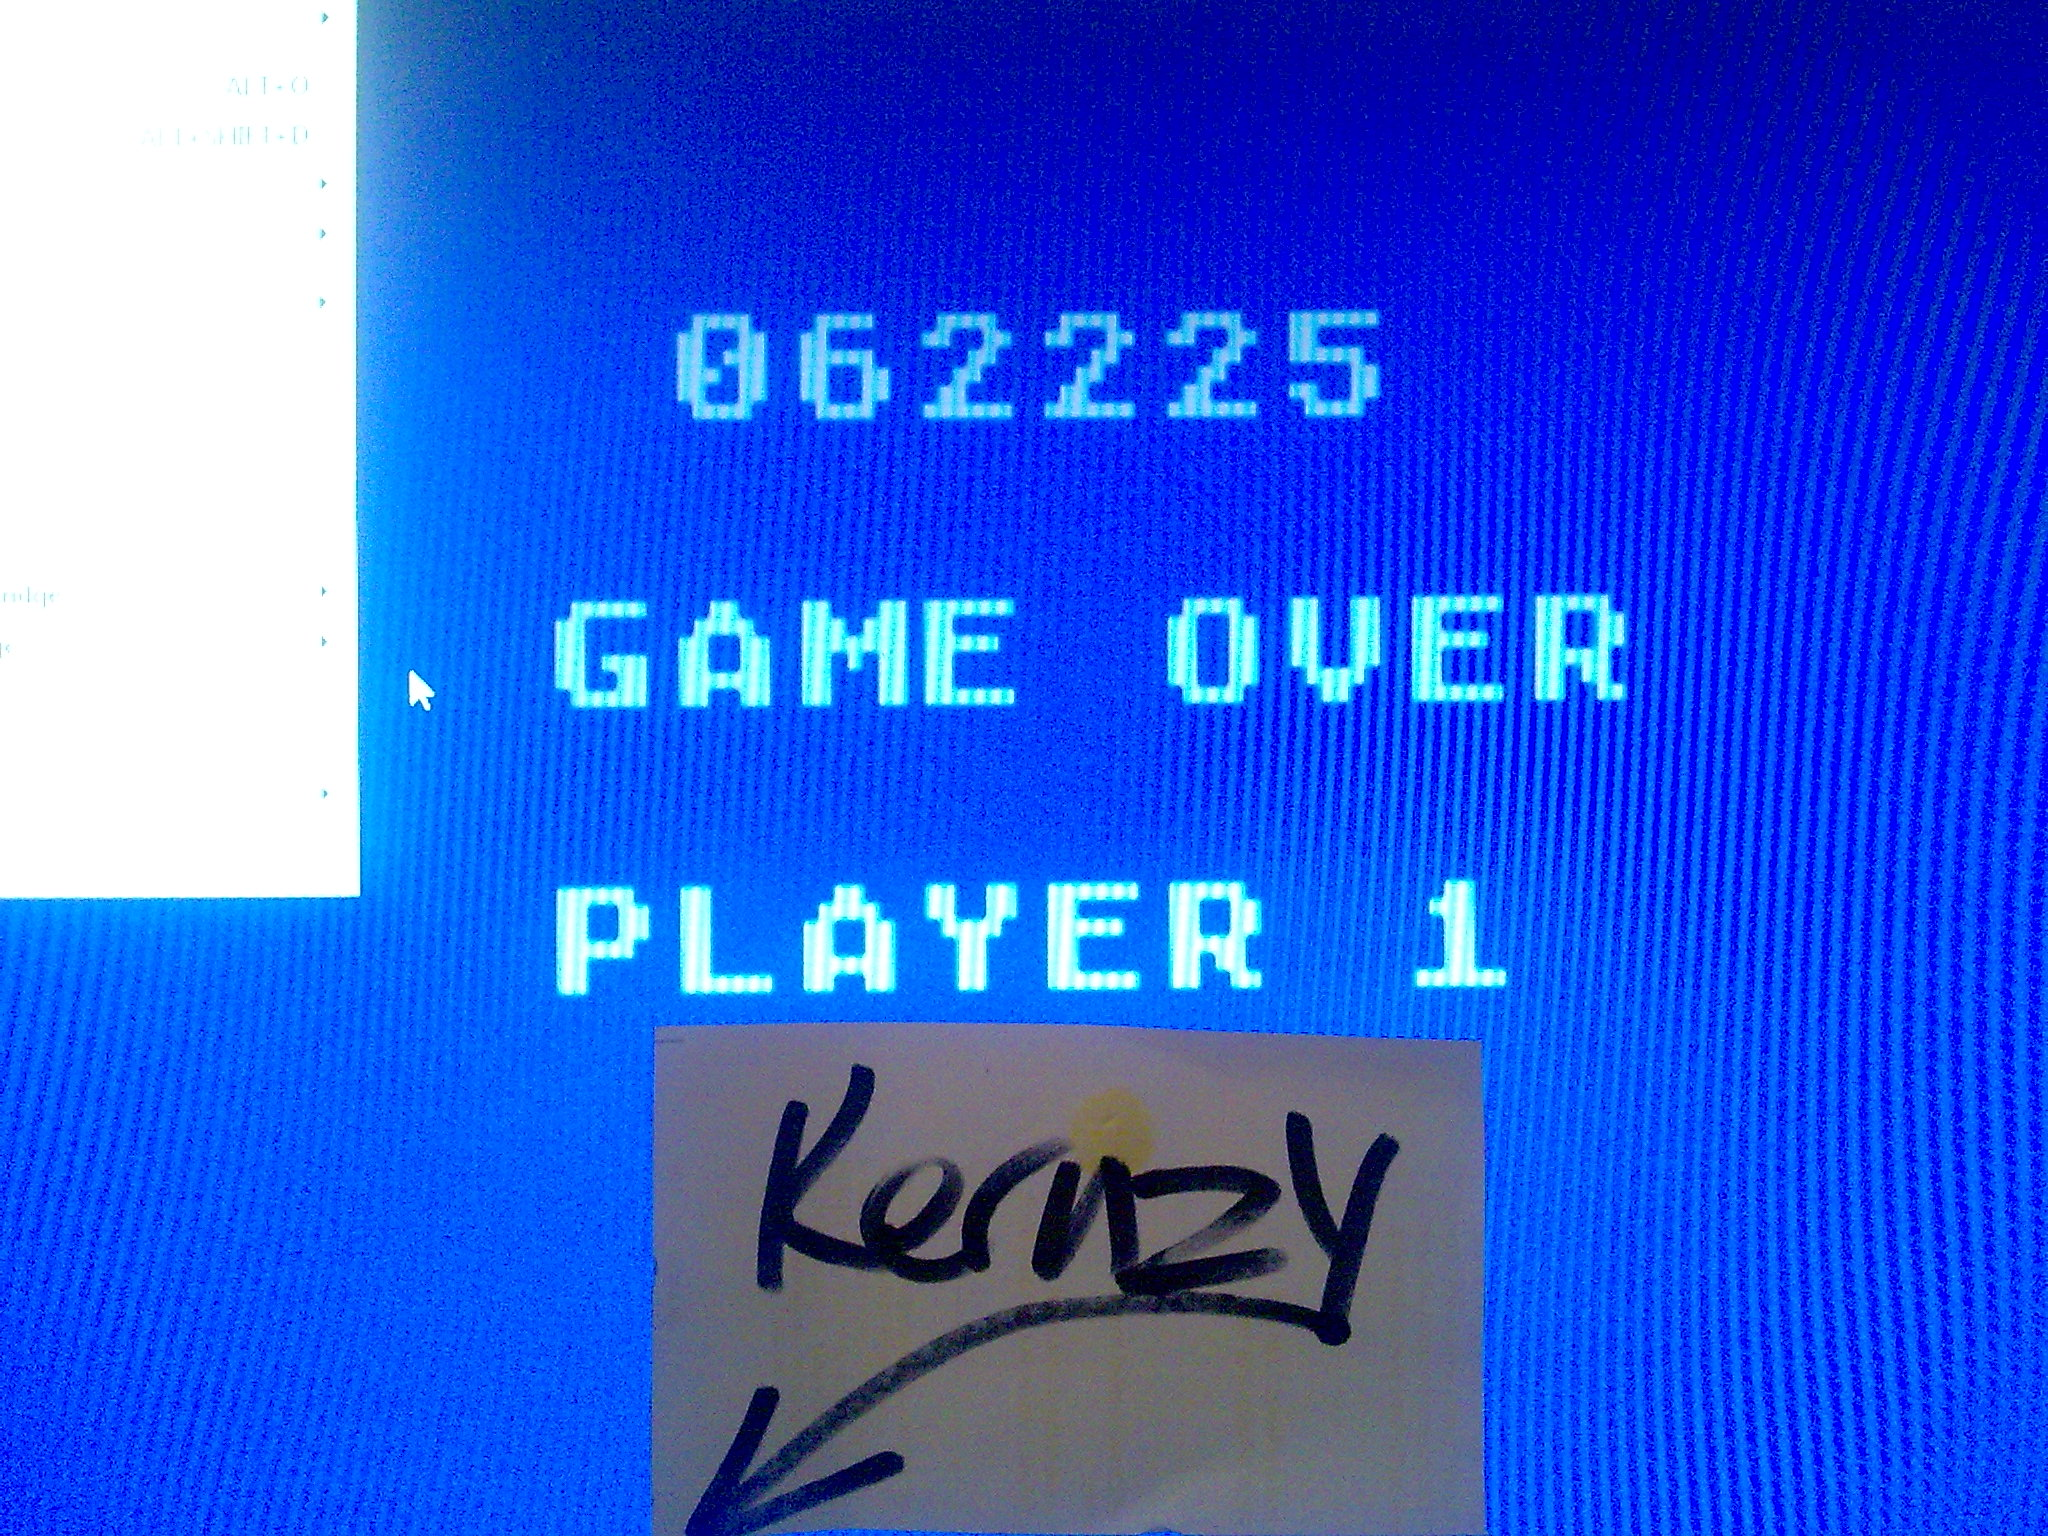 kernzy: Bruce Lee (Atari 400/800/XL/XE Emulated) 62,250 points on 2014-10-13 21:17:38